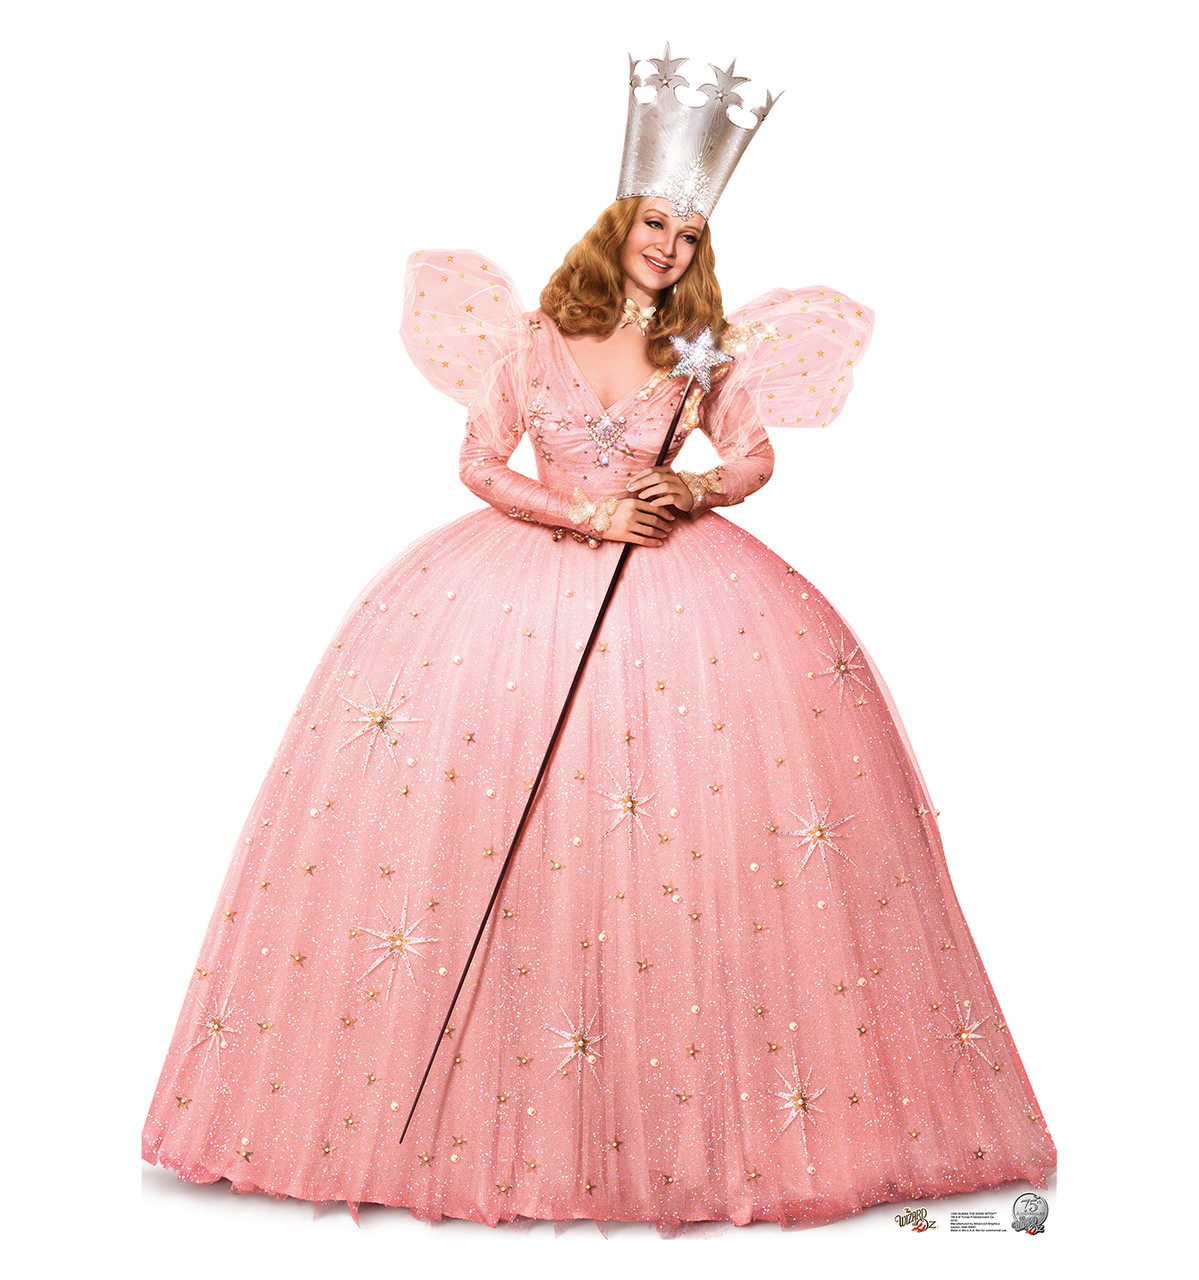 Life-size Glinda the Good Witch Cardboard Standup